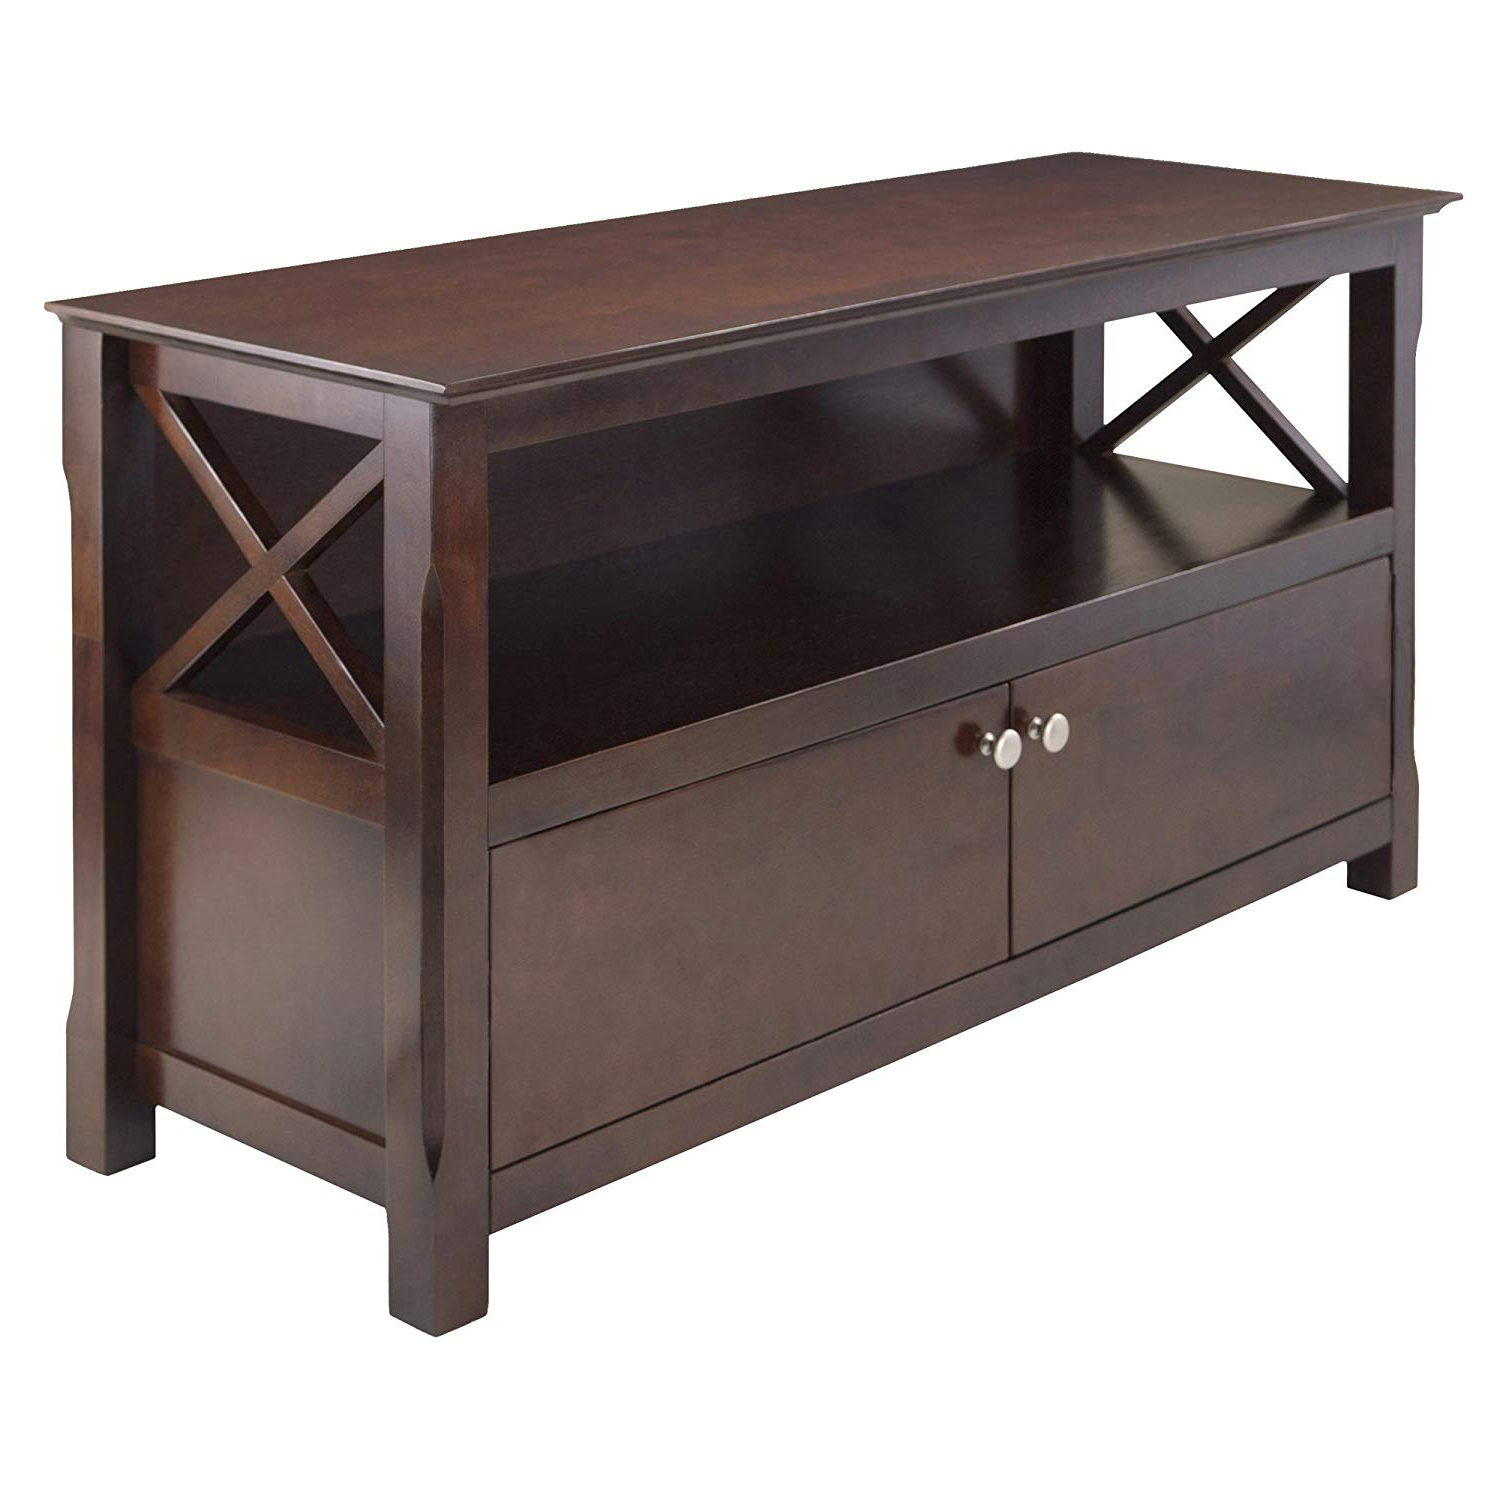 Wooden Tv Stands And Cabinets In Well Liked Amazon: Winsome Wood Xola Tv Stand: Kitchen & Dining (View 17 of 20)